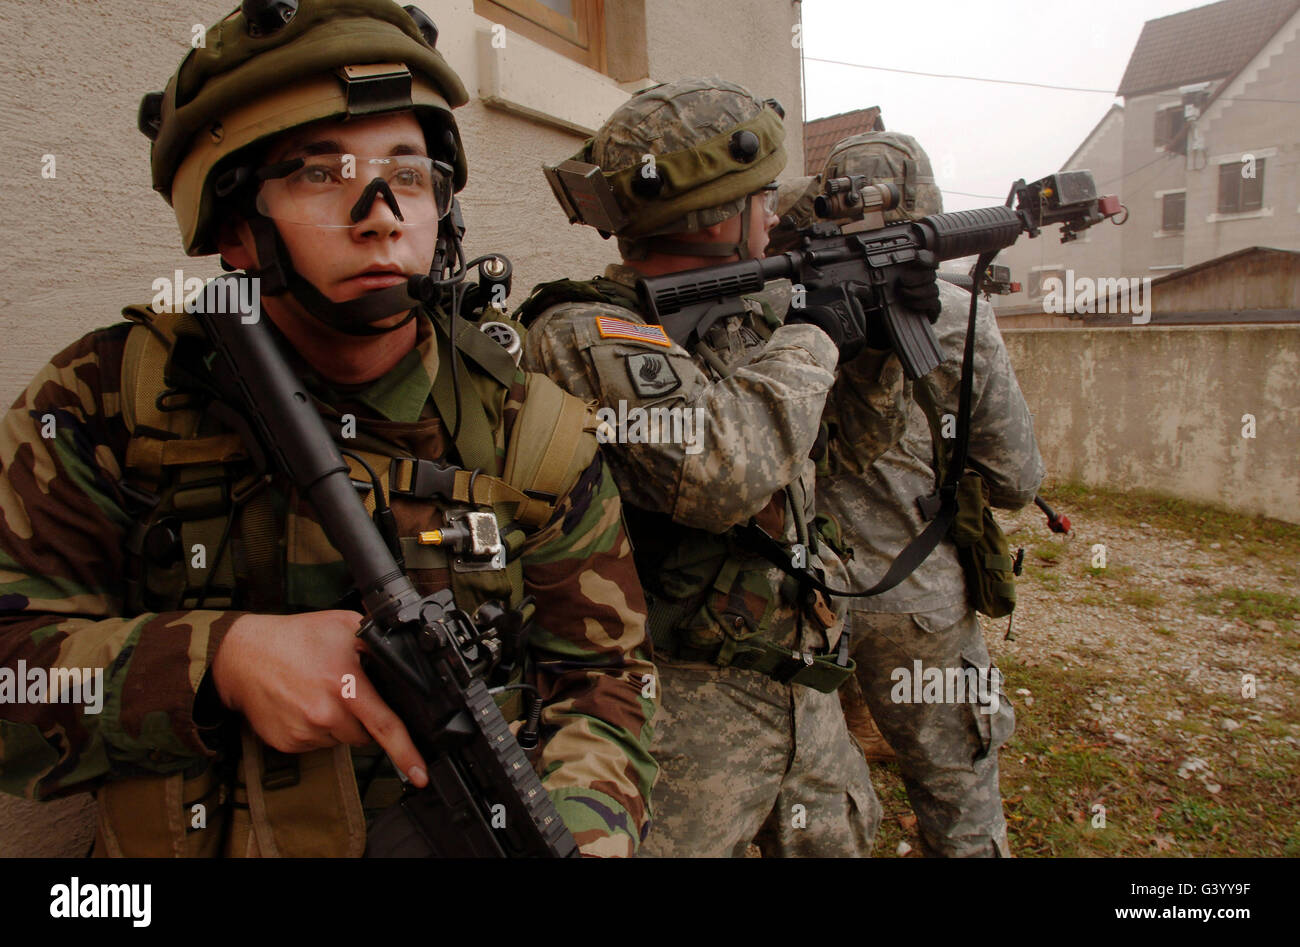 U.S. Army infantry in pursuit of a high valued target in an urban warfare scenario. - Stock Image